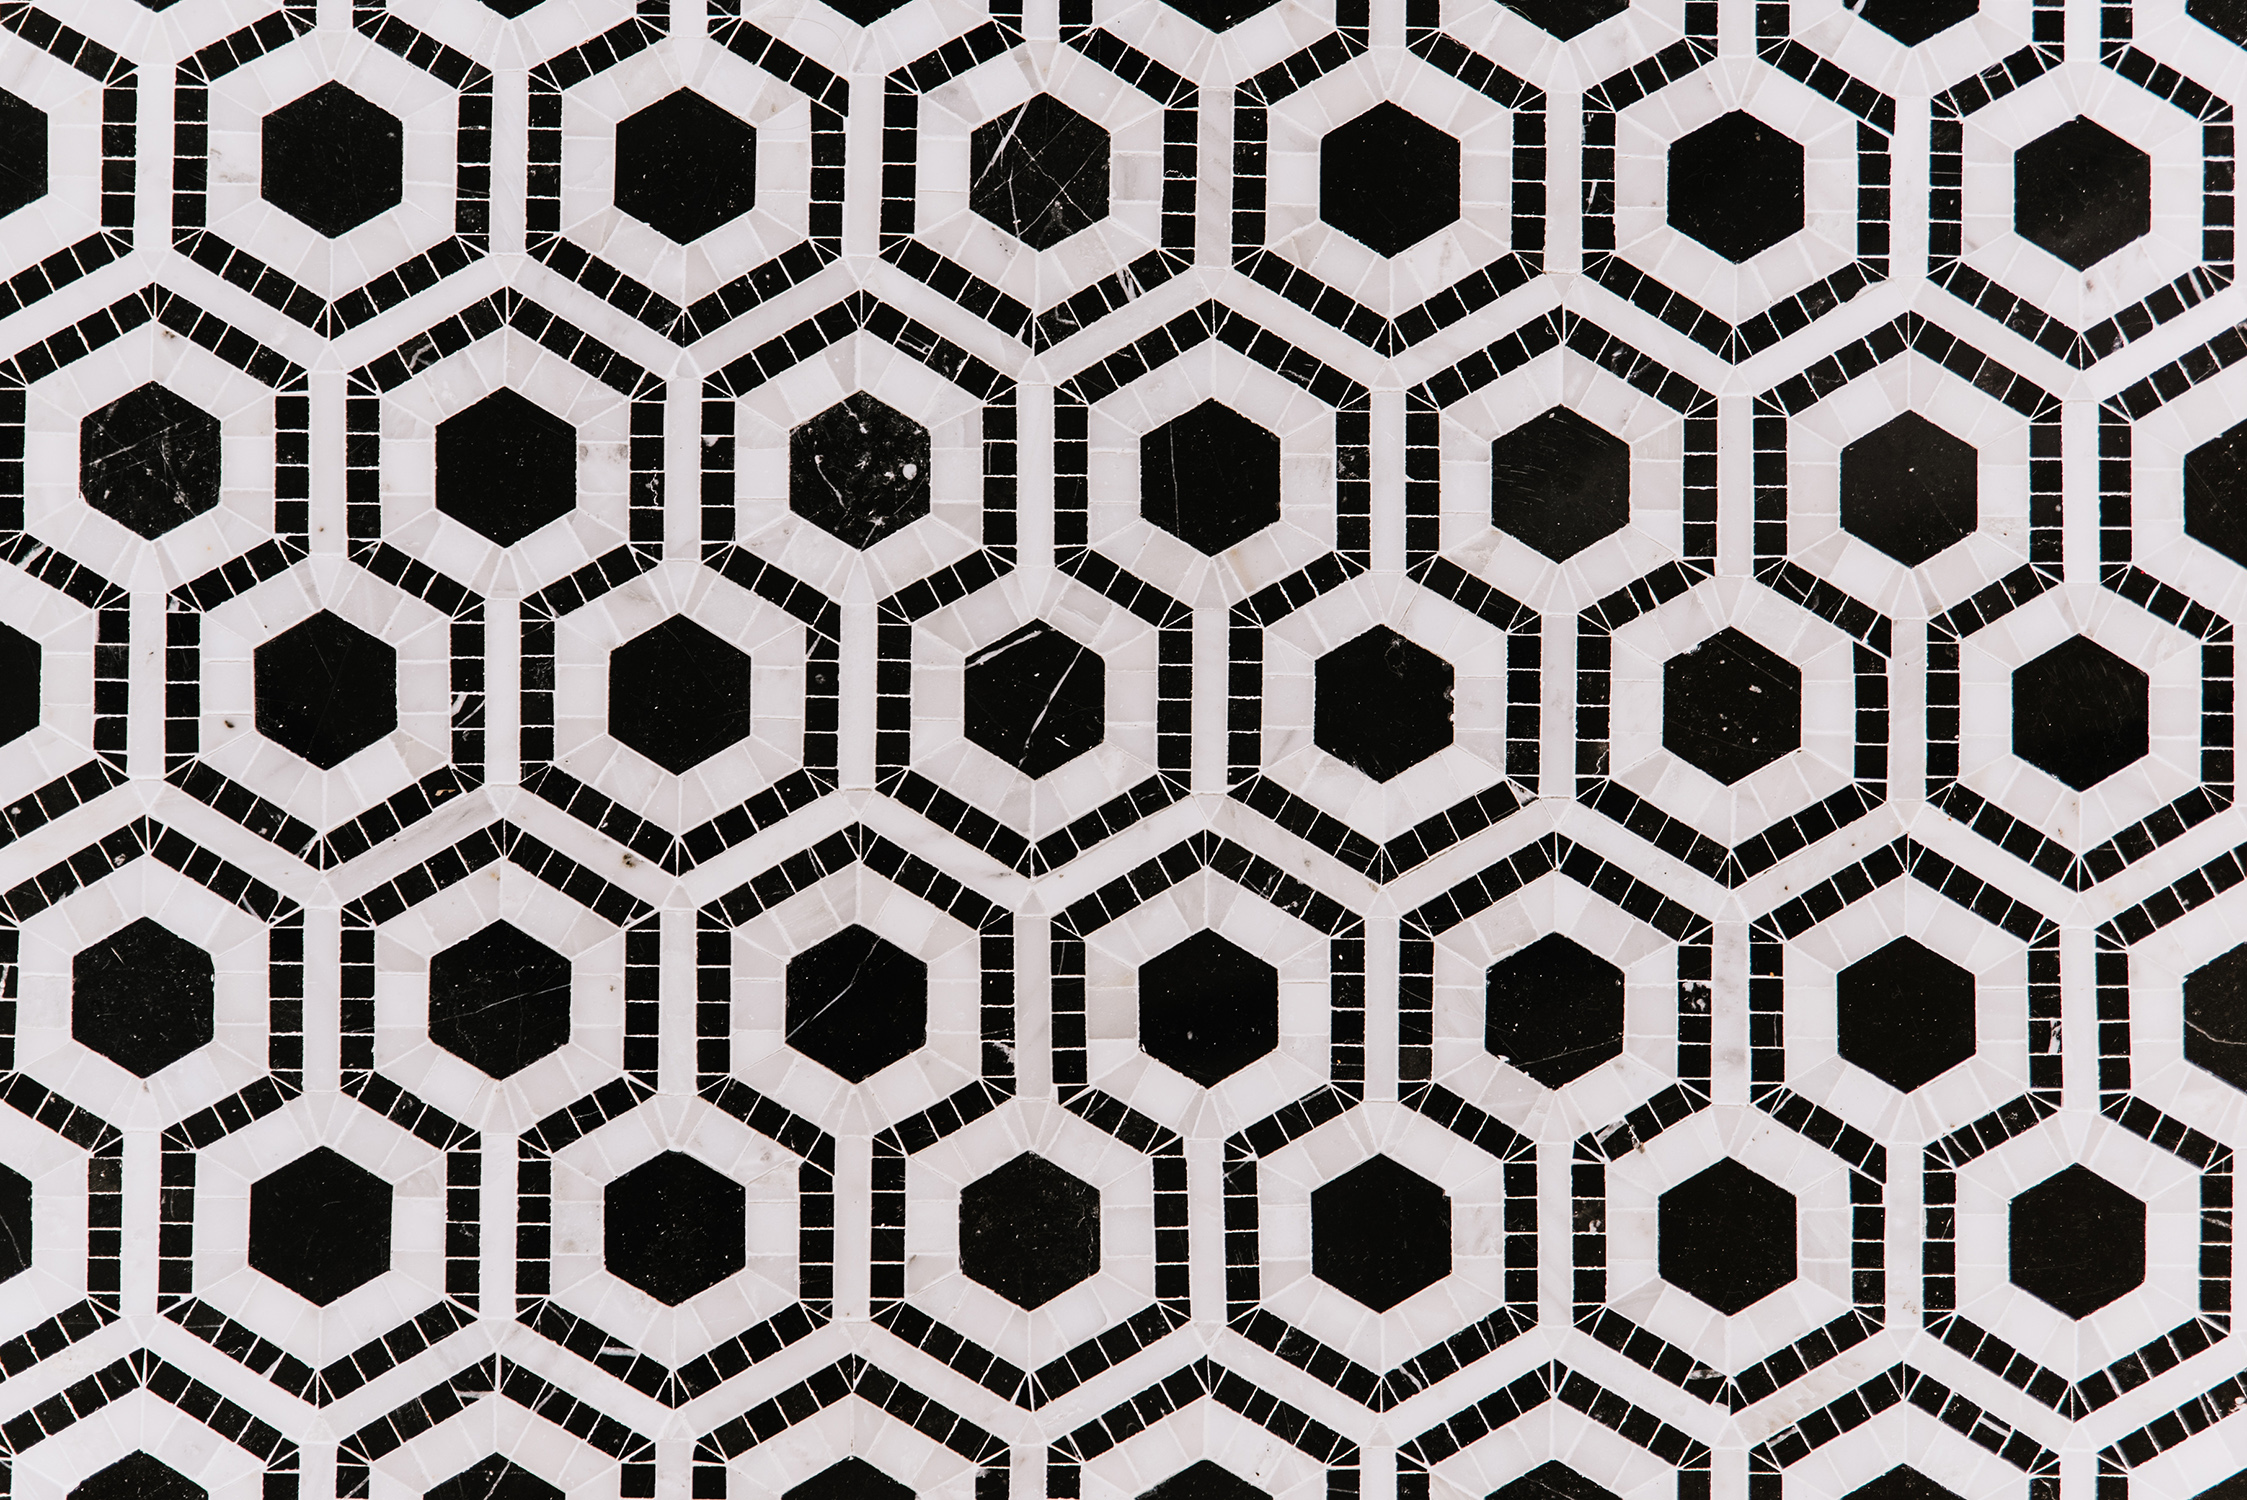 sullivan island house black and white hexagon floor tile